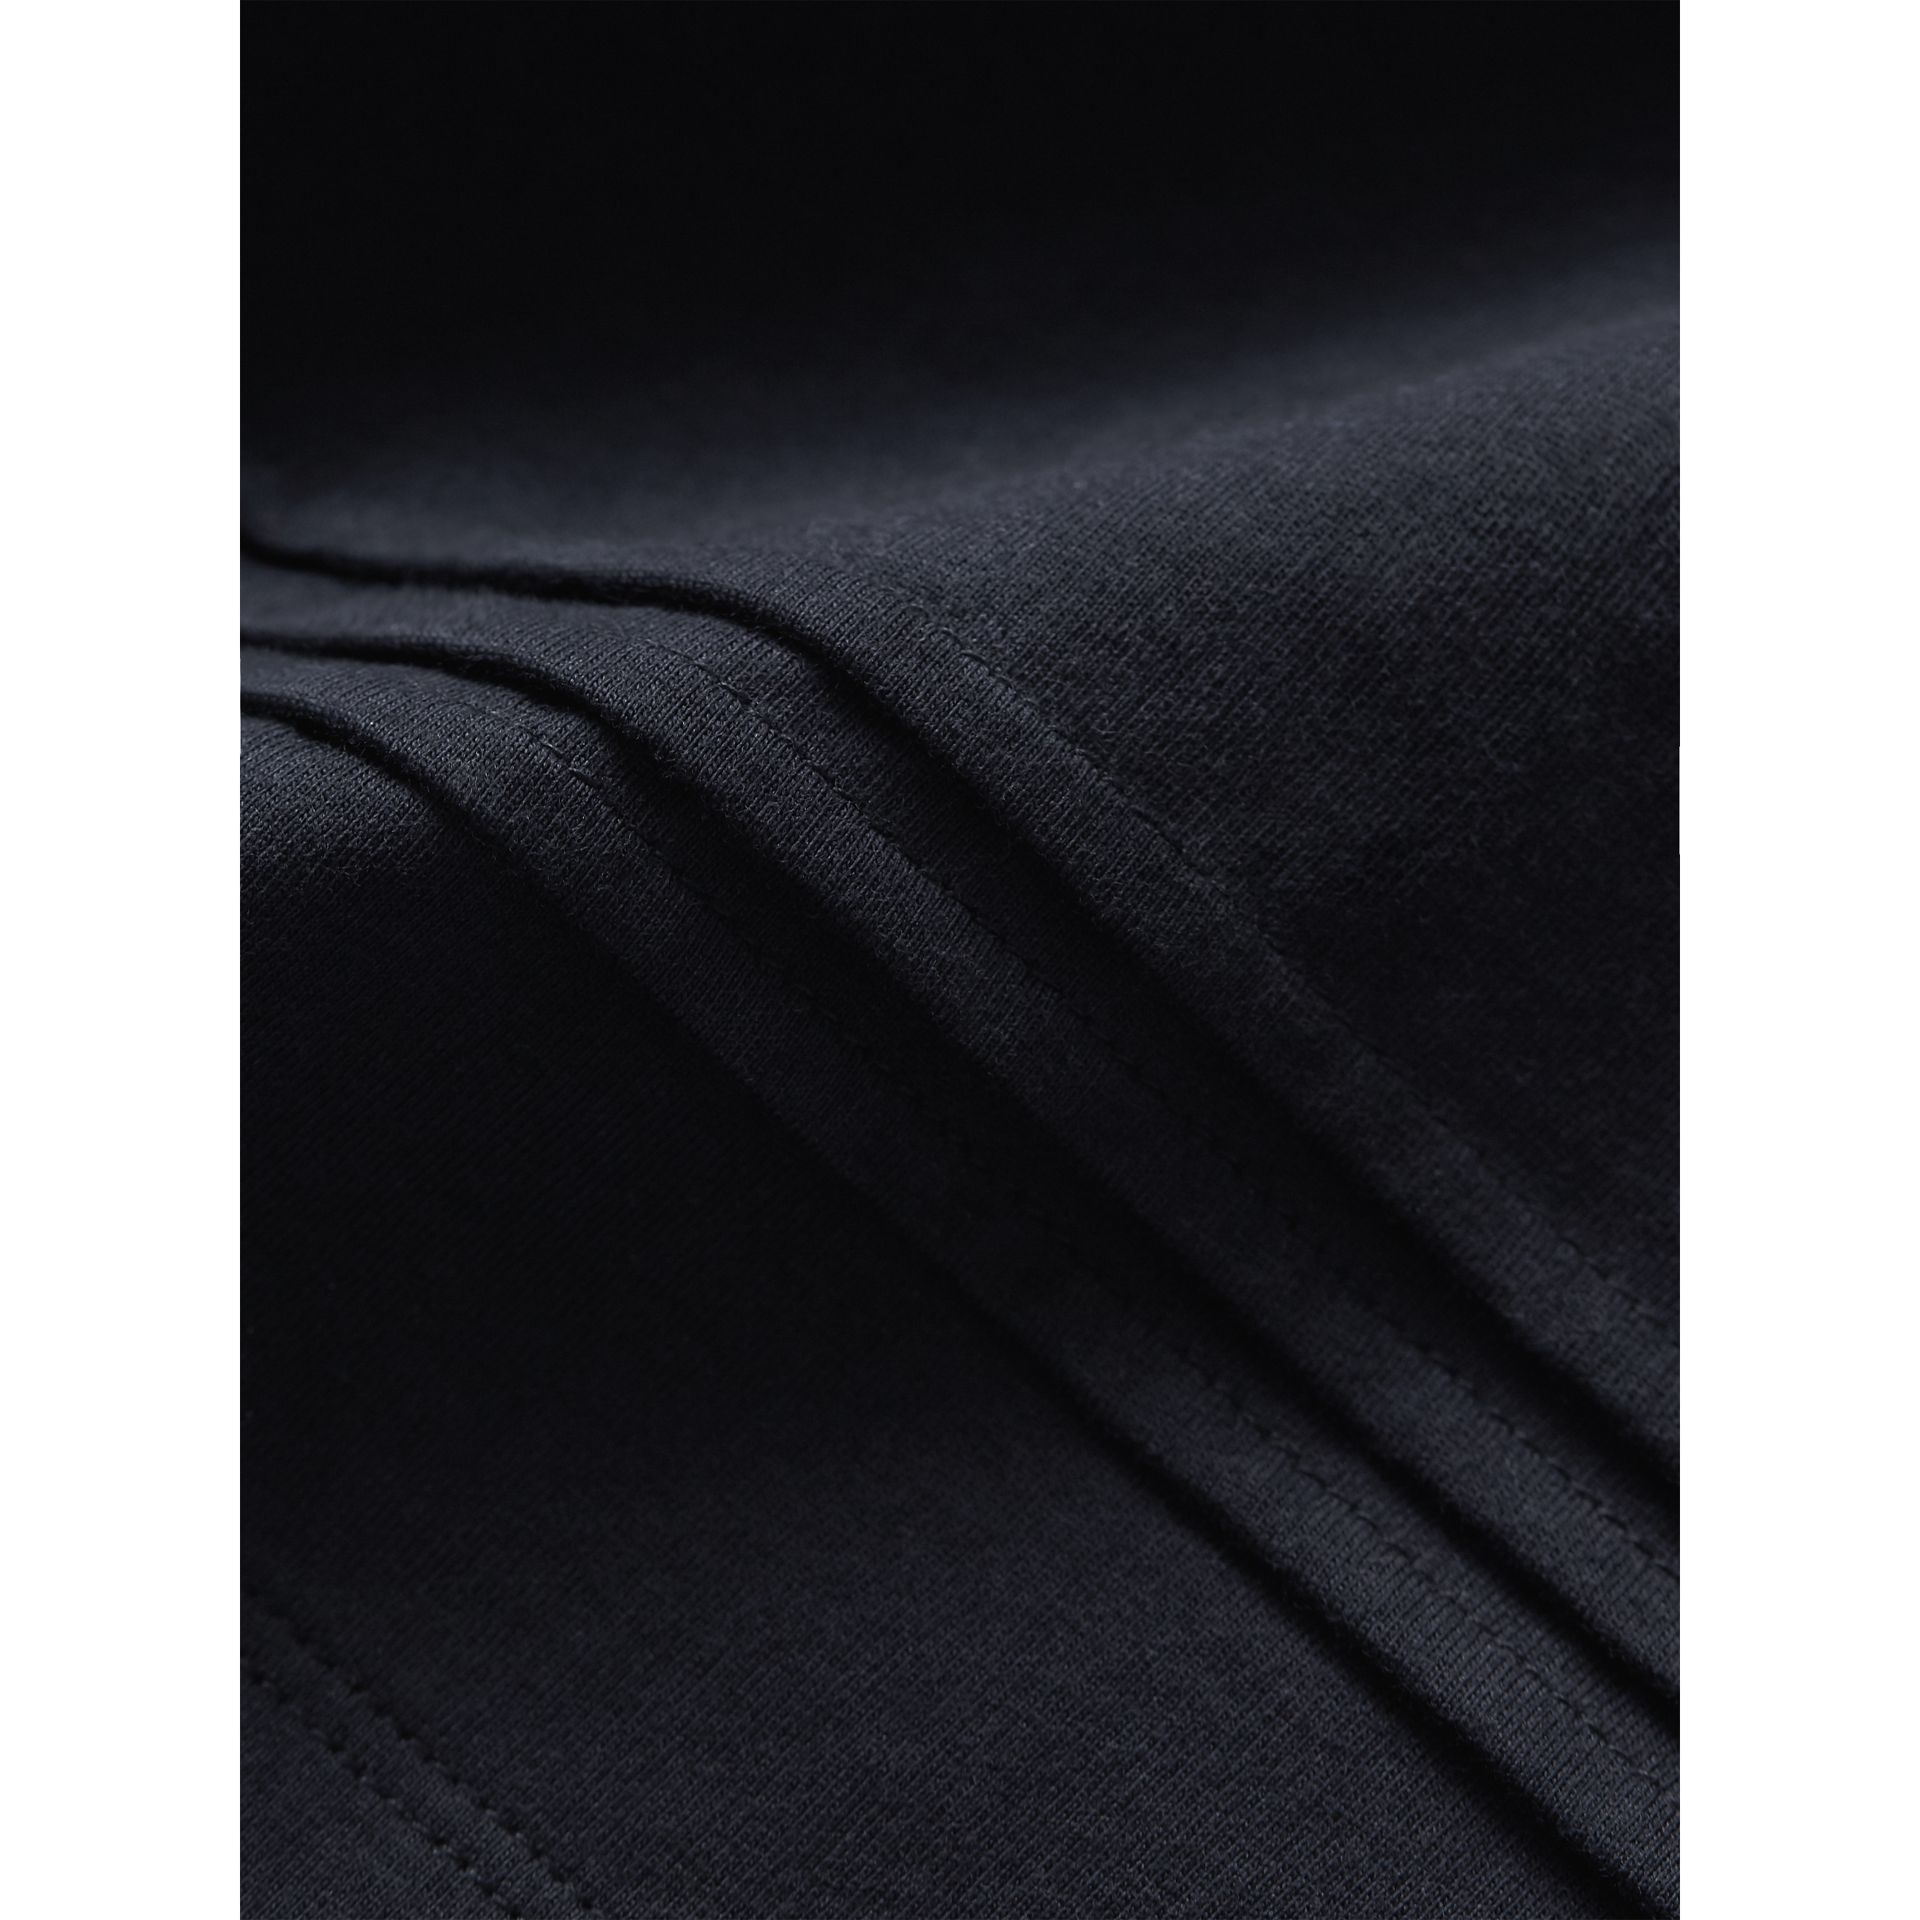 Long-sleeve Pleat and Check Detail Cotton T-shirt in Navy - Girl | Burberry - gallery image 2